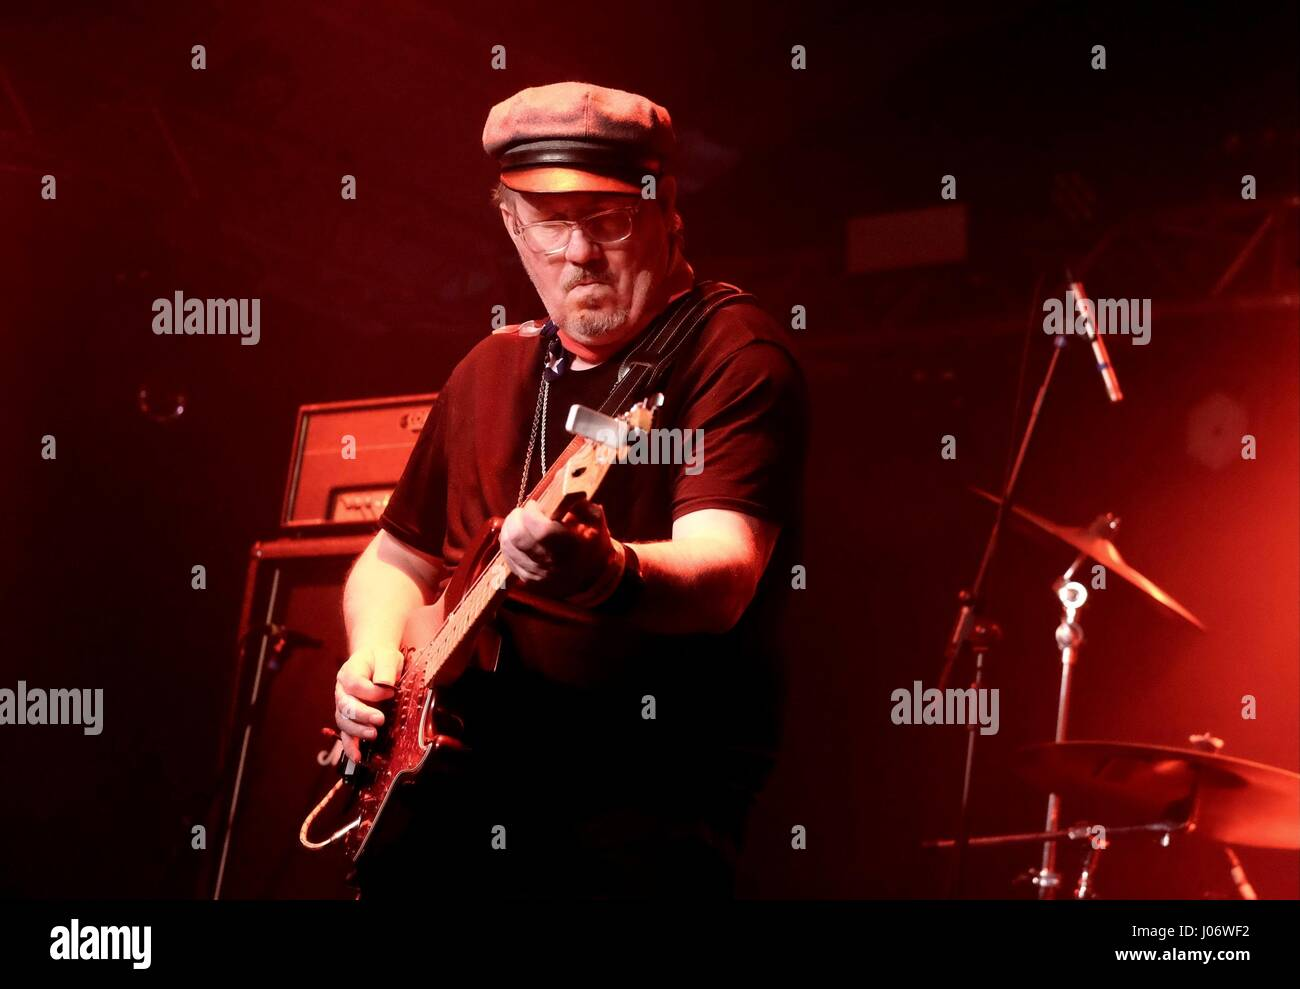 Jean-Marie 'JC' Carroll  vocalist with British punk band The Members - Stock Image